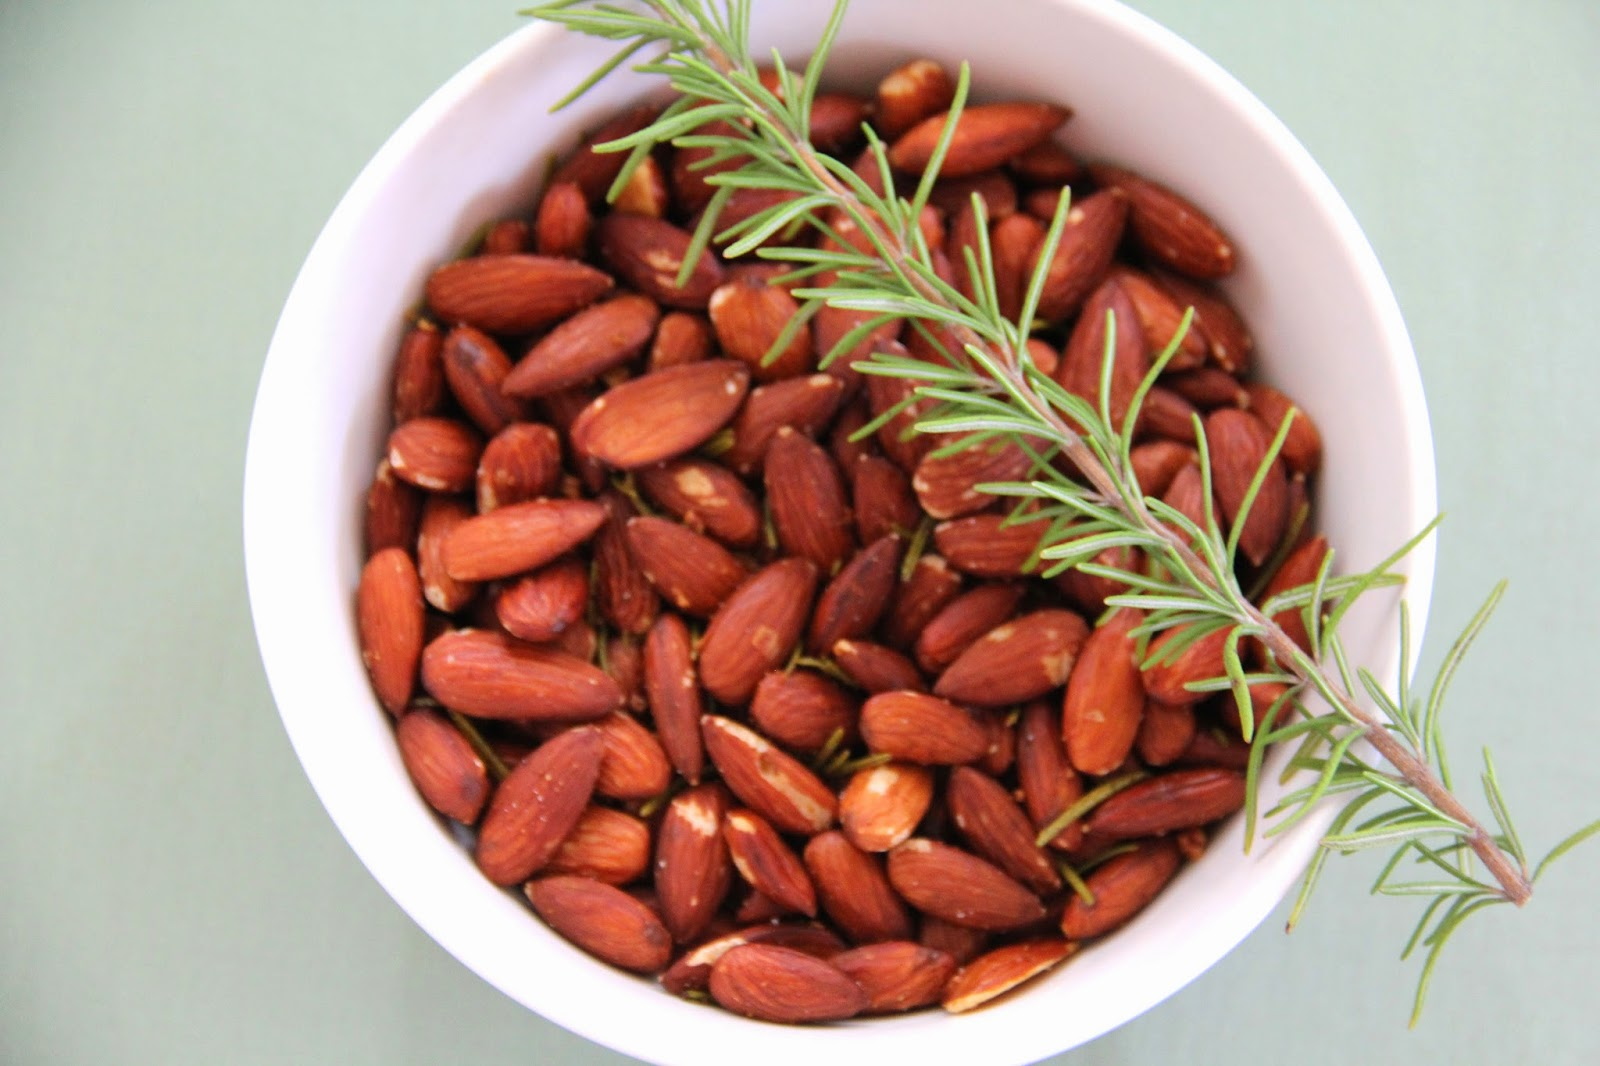 Garlic and Rosemary Roasted Almonds @ Elizabeth, Marie, and Me